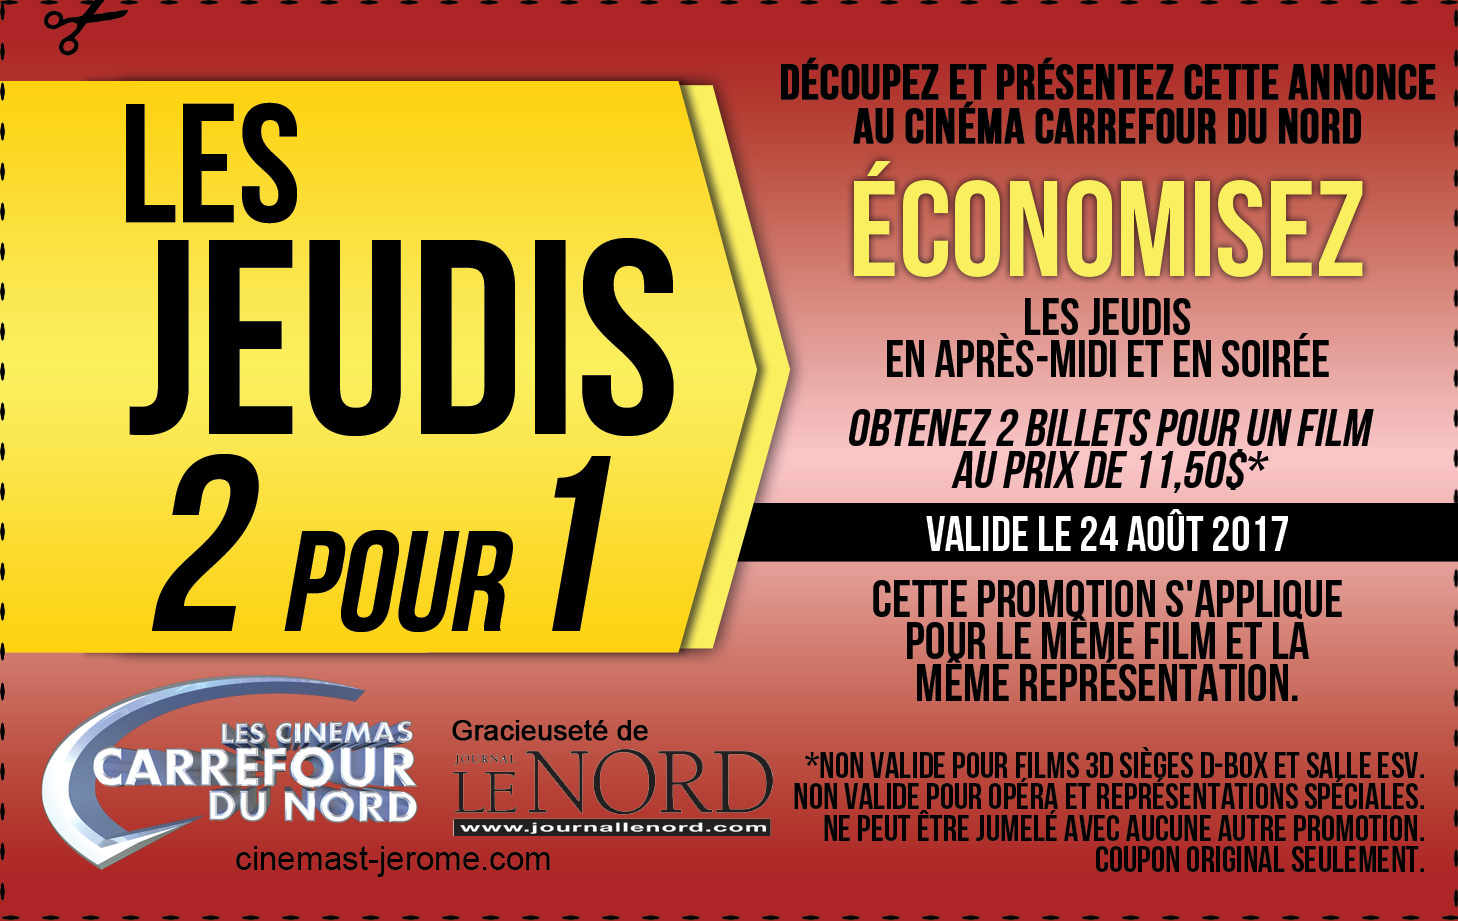 coupon-2-pour-1-cinema-carrefour-du-nord